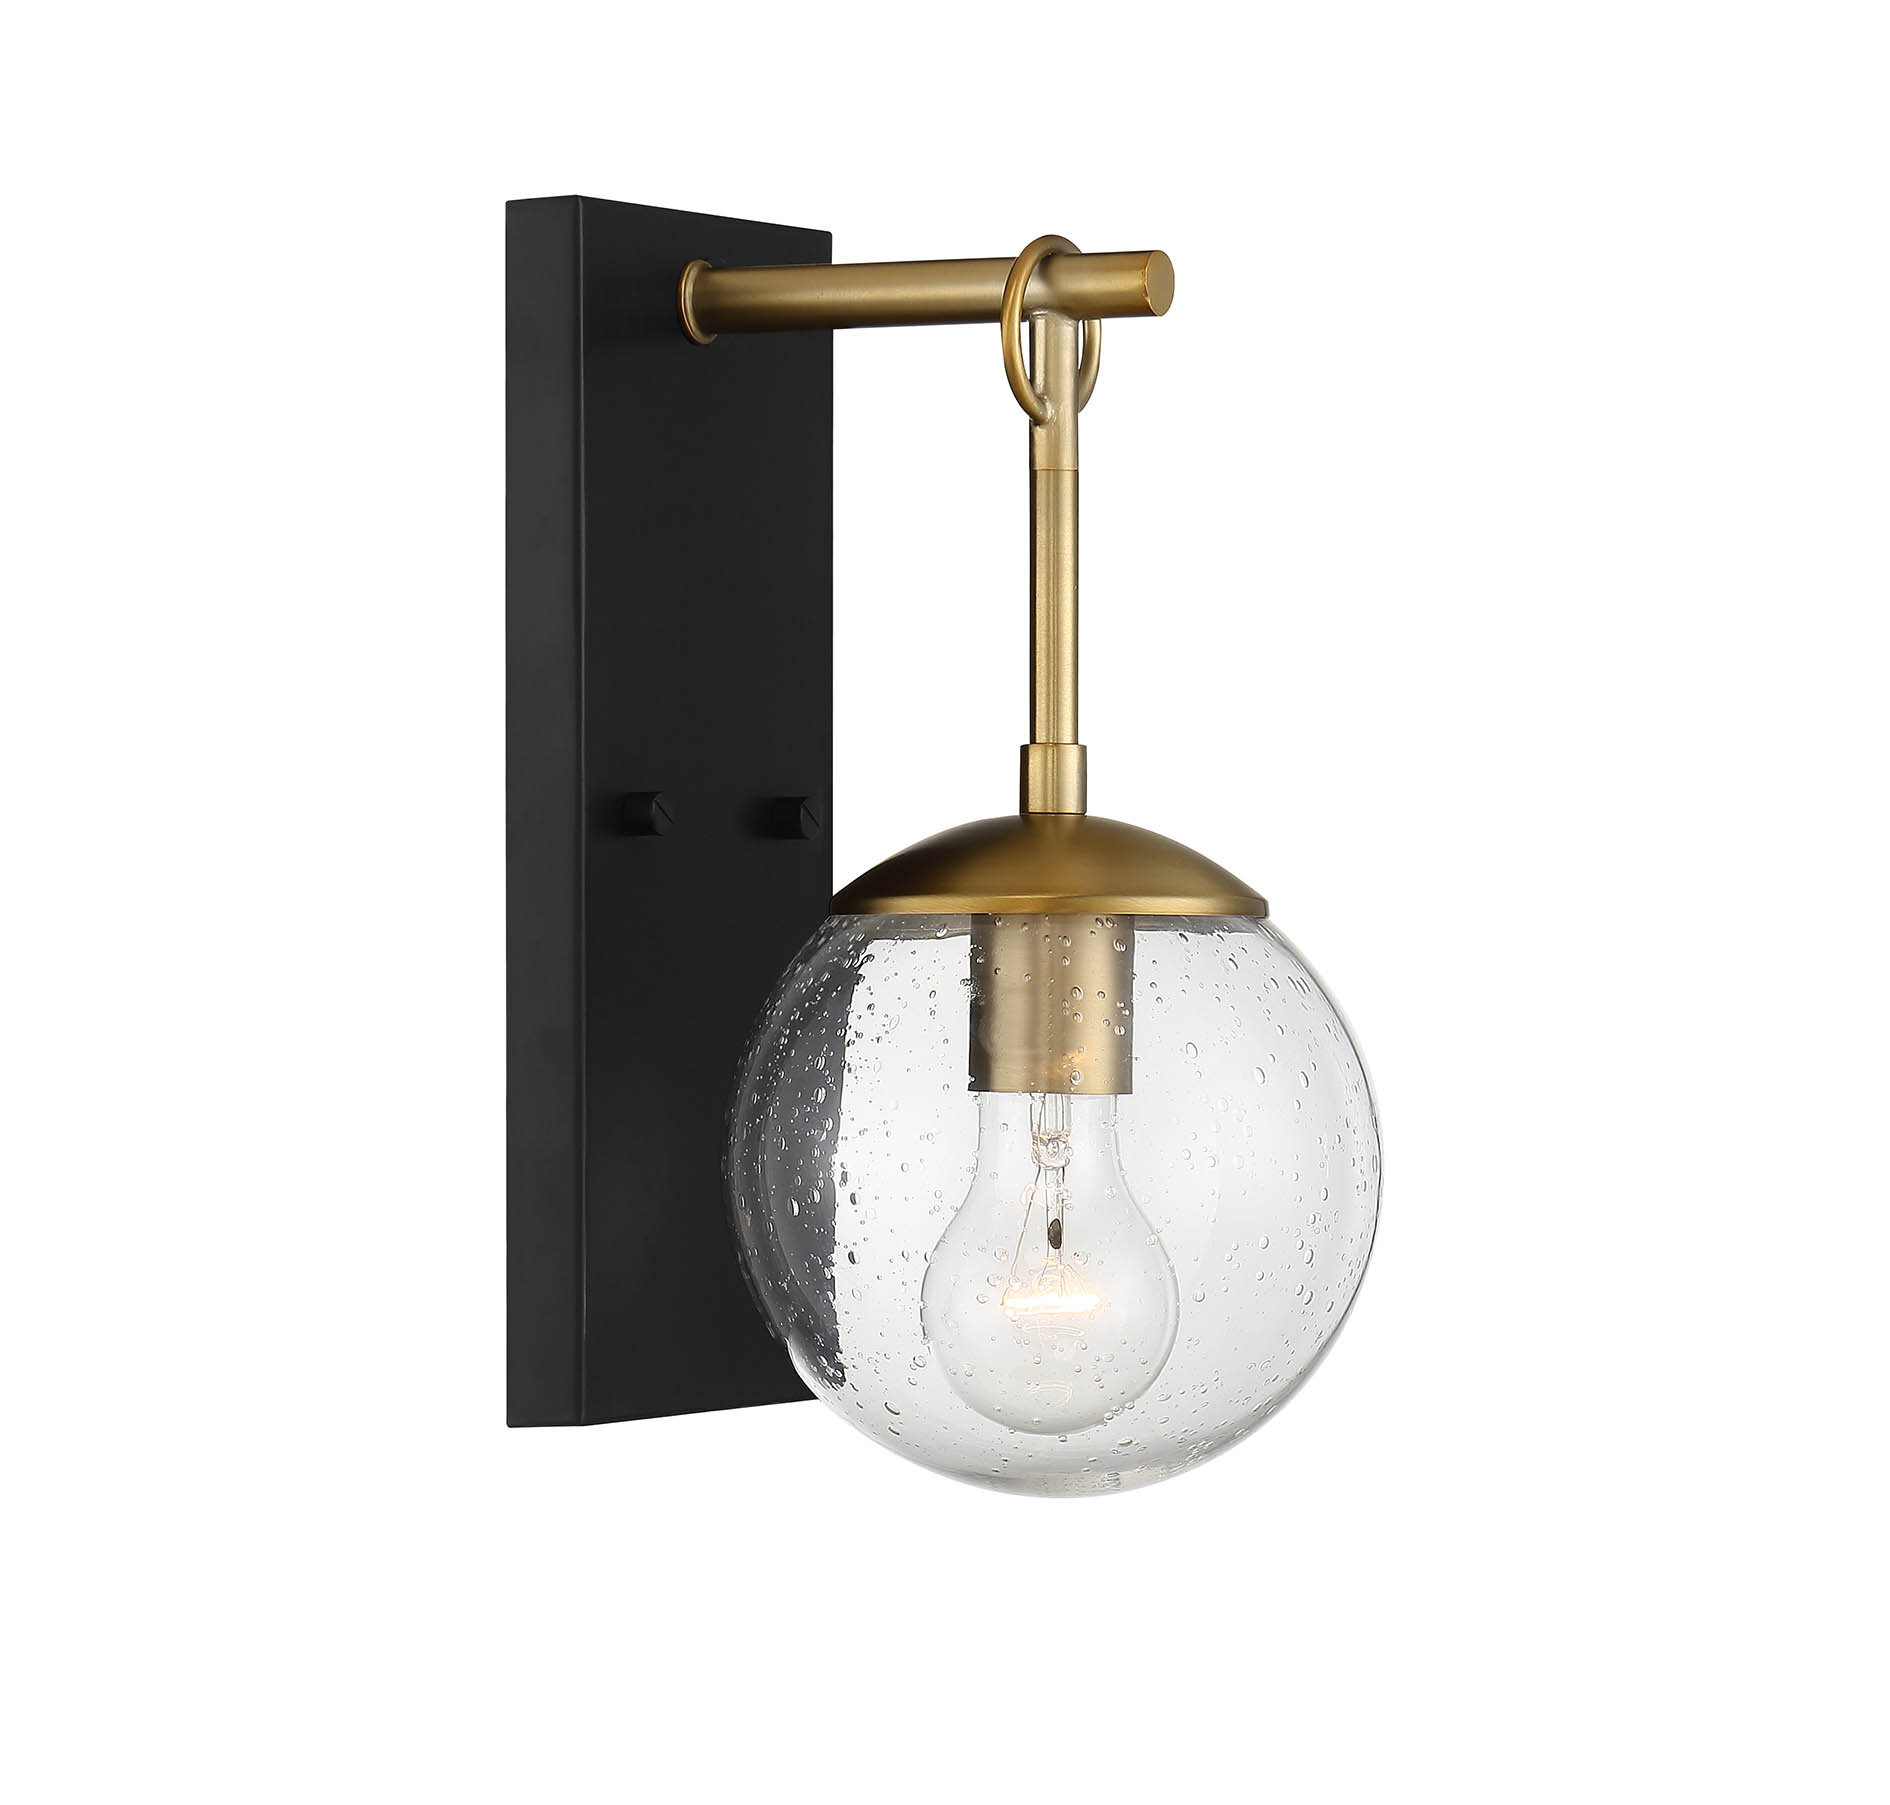 Globe Brayden Studio Outdoor Wall Lighting You Ll Love In 2021 Wayfair